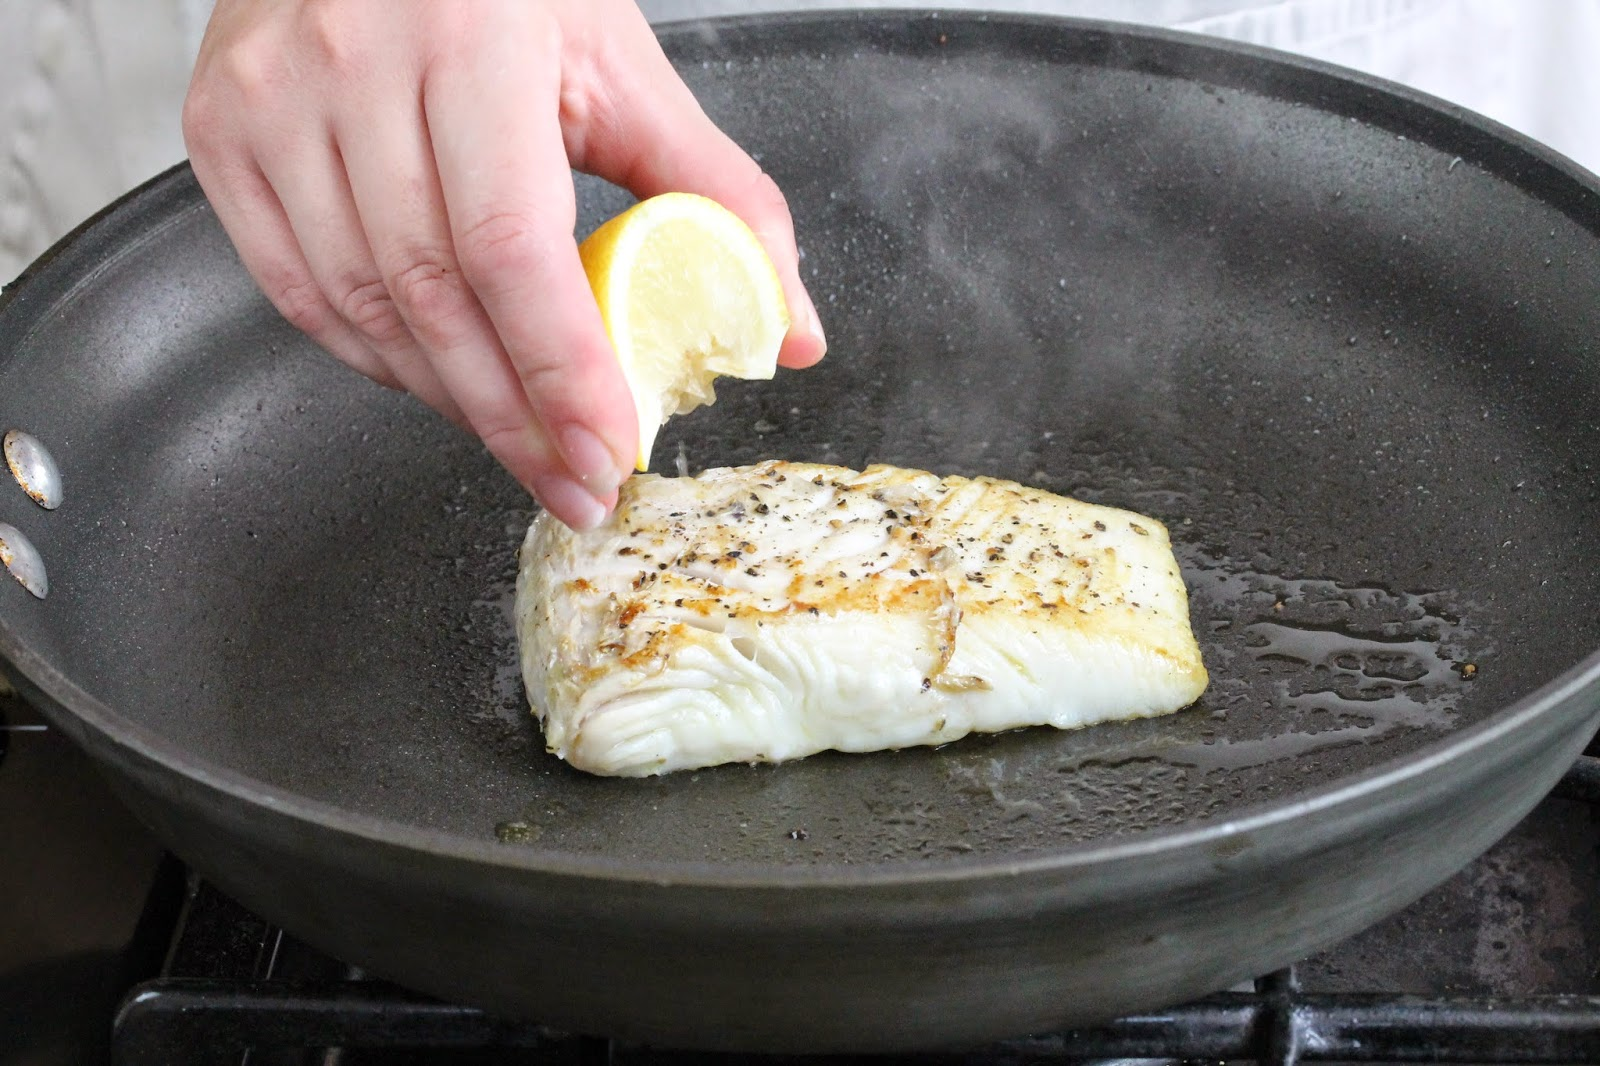 Rachel squeezes juice from a fresh lemon wedge onto the fish filet